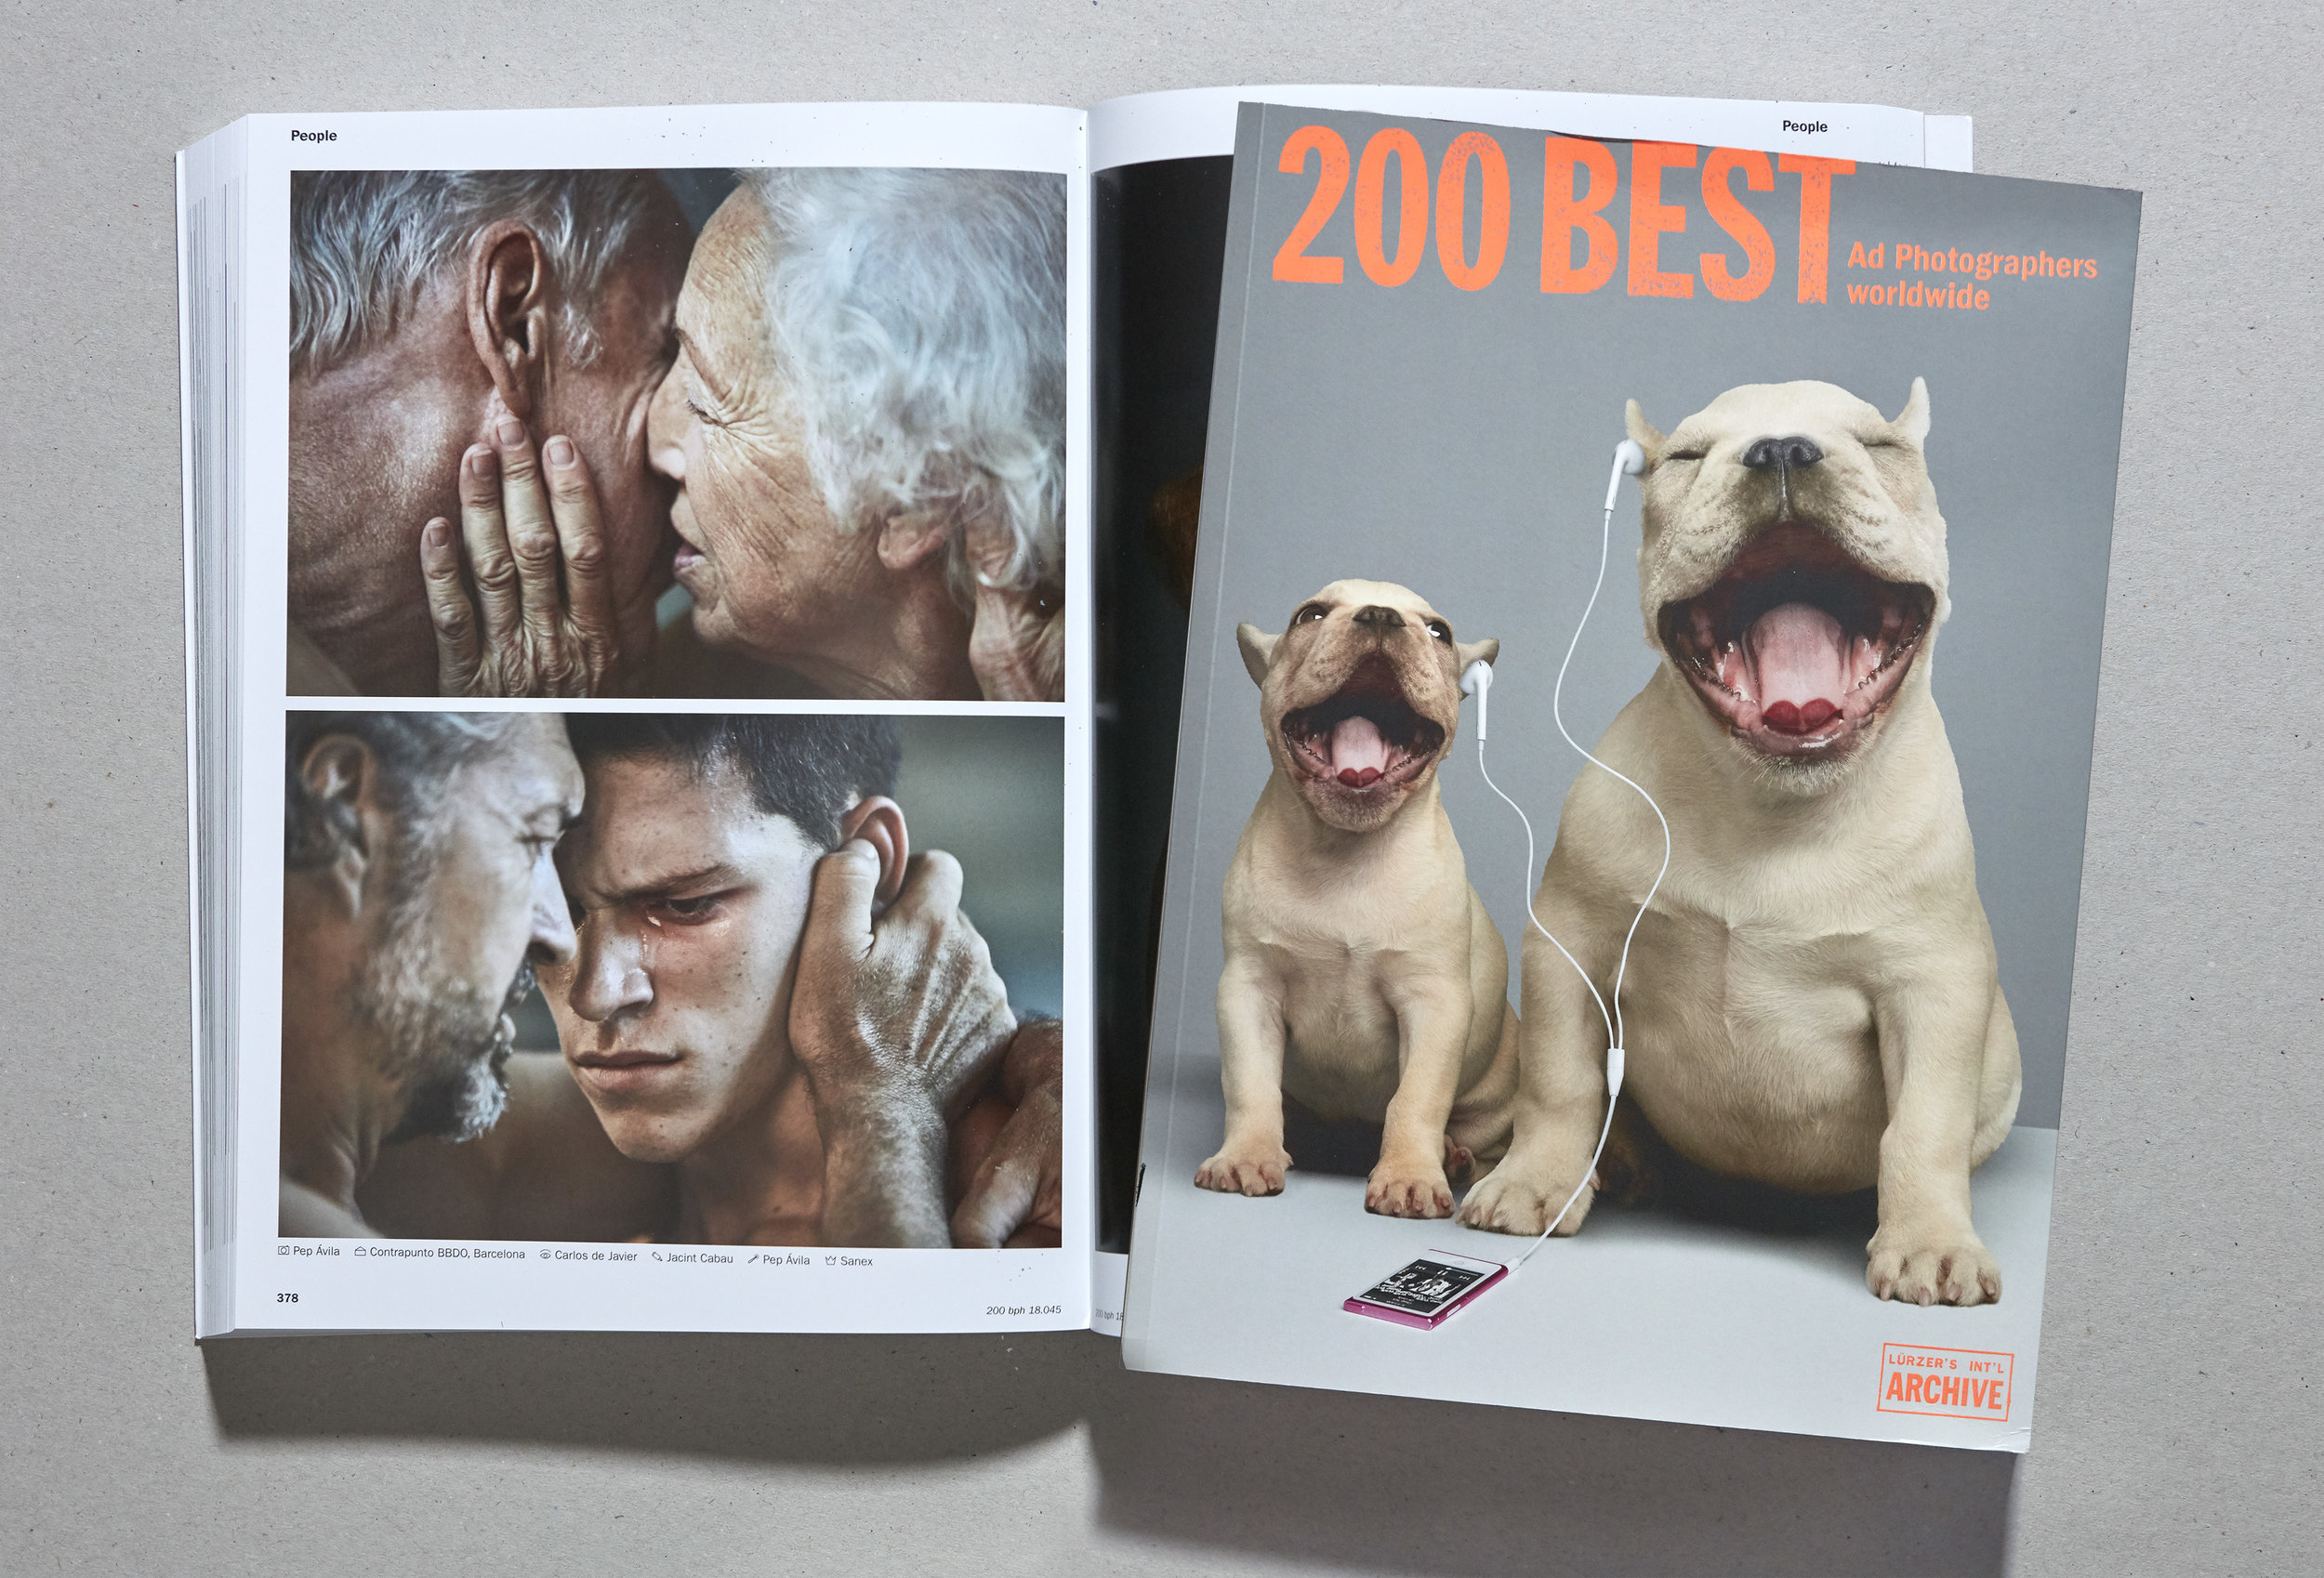 200 BEST AD PHOTOGRAPHERS WORLDWIDE. LÜRZERS ARCHIVE.